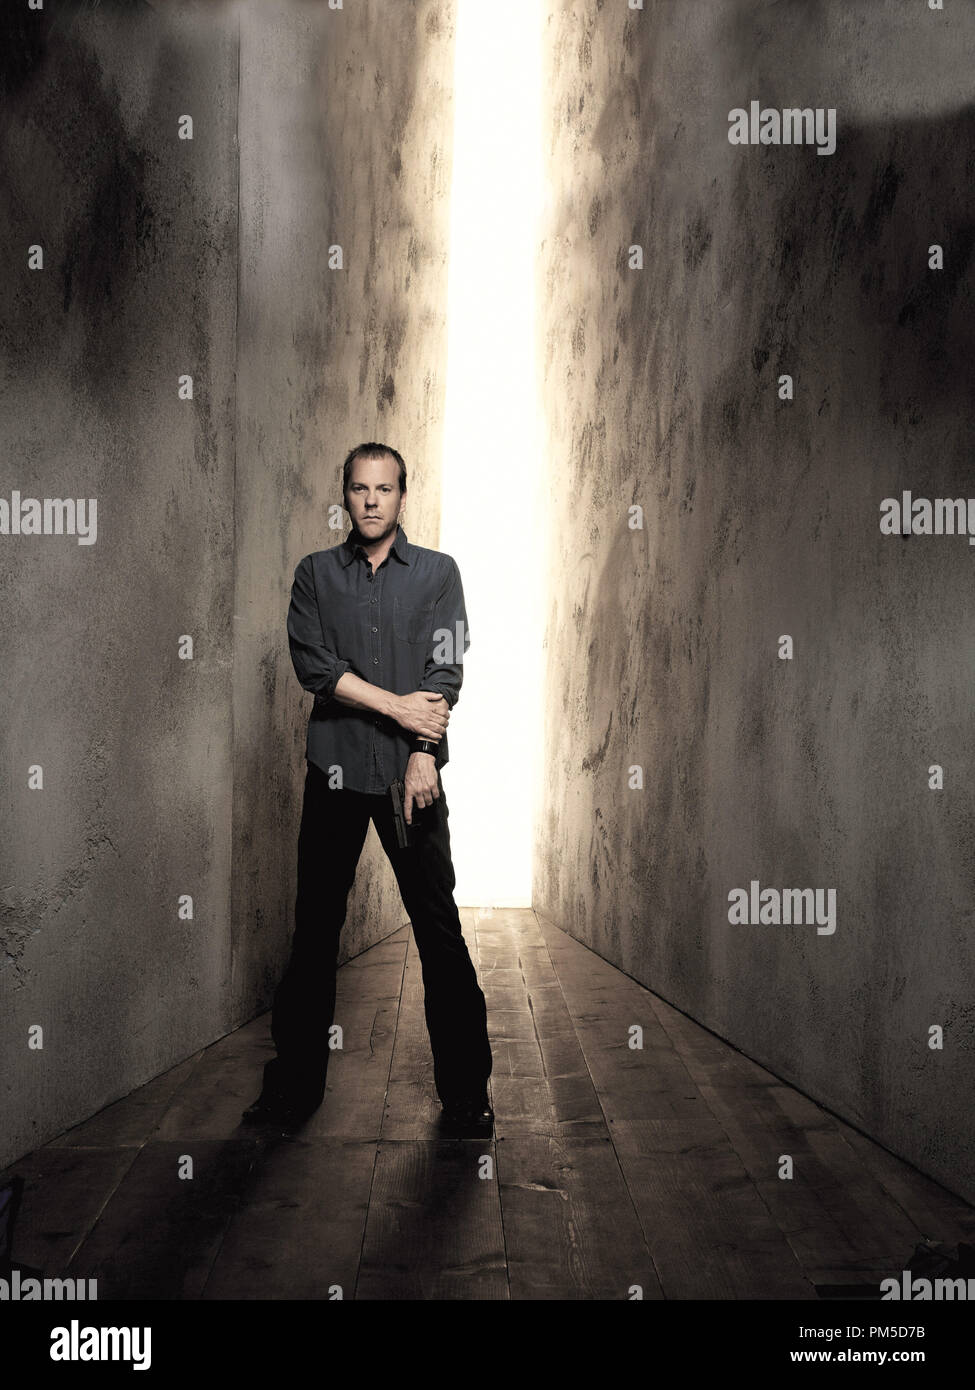 Studio Publicity Still from '24' Kiefer Sutherland 2005   File Reference # 307362366THA  For Editorial Use Only -  All Rights Reserved - Stock Image